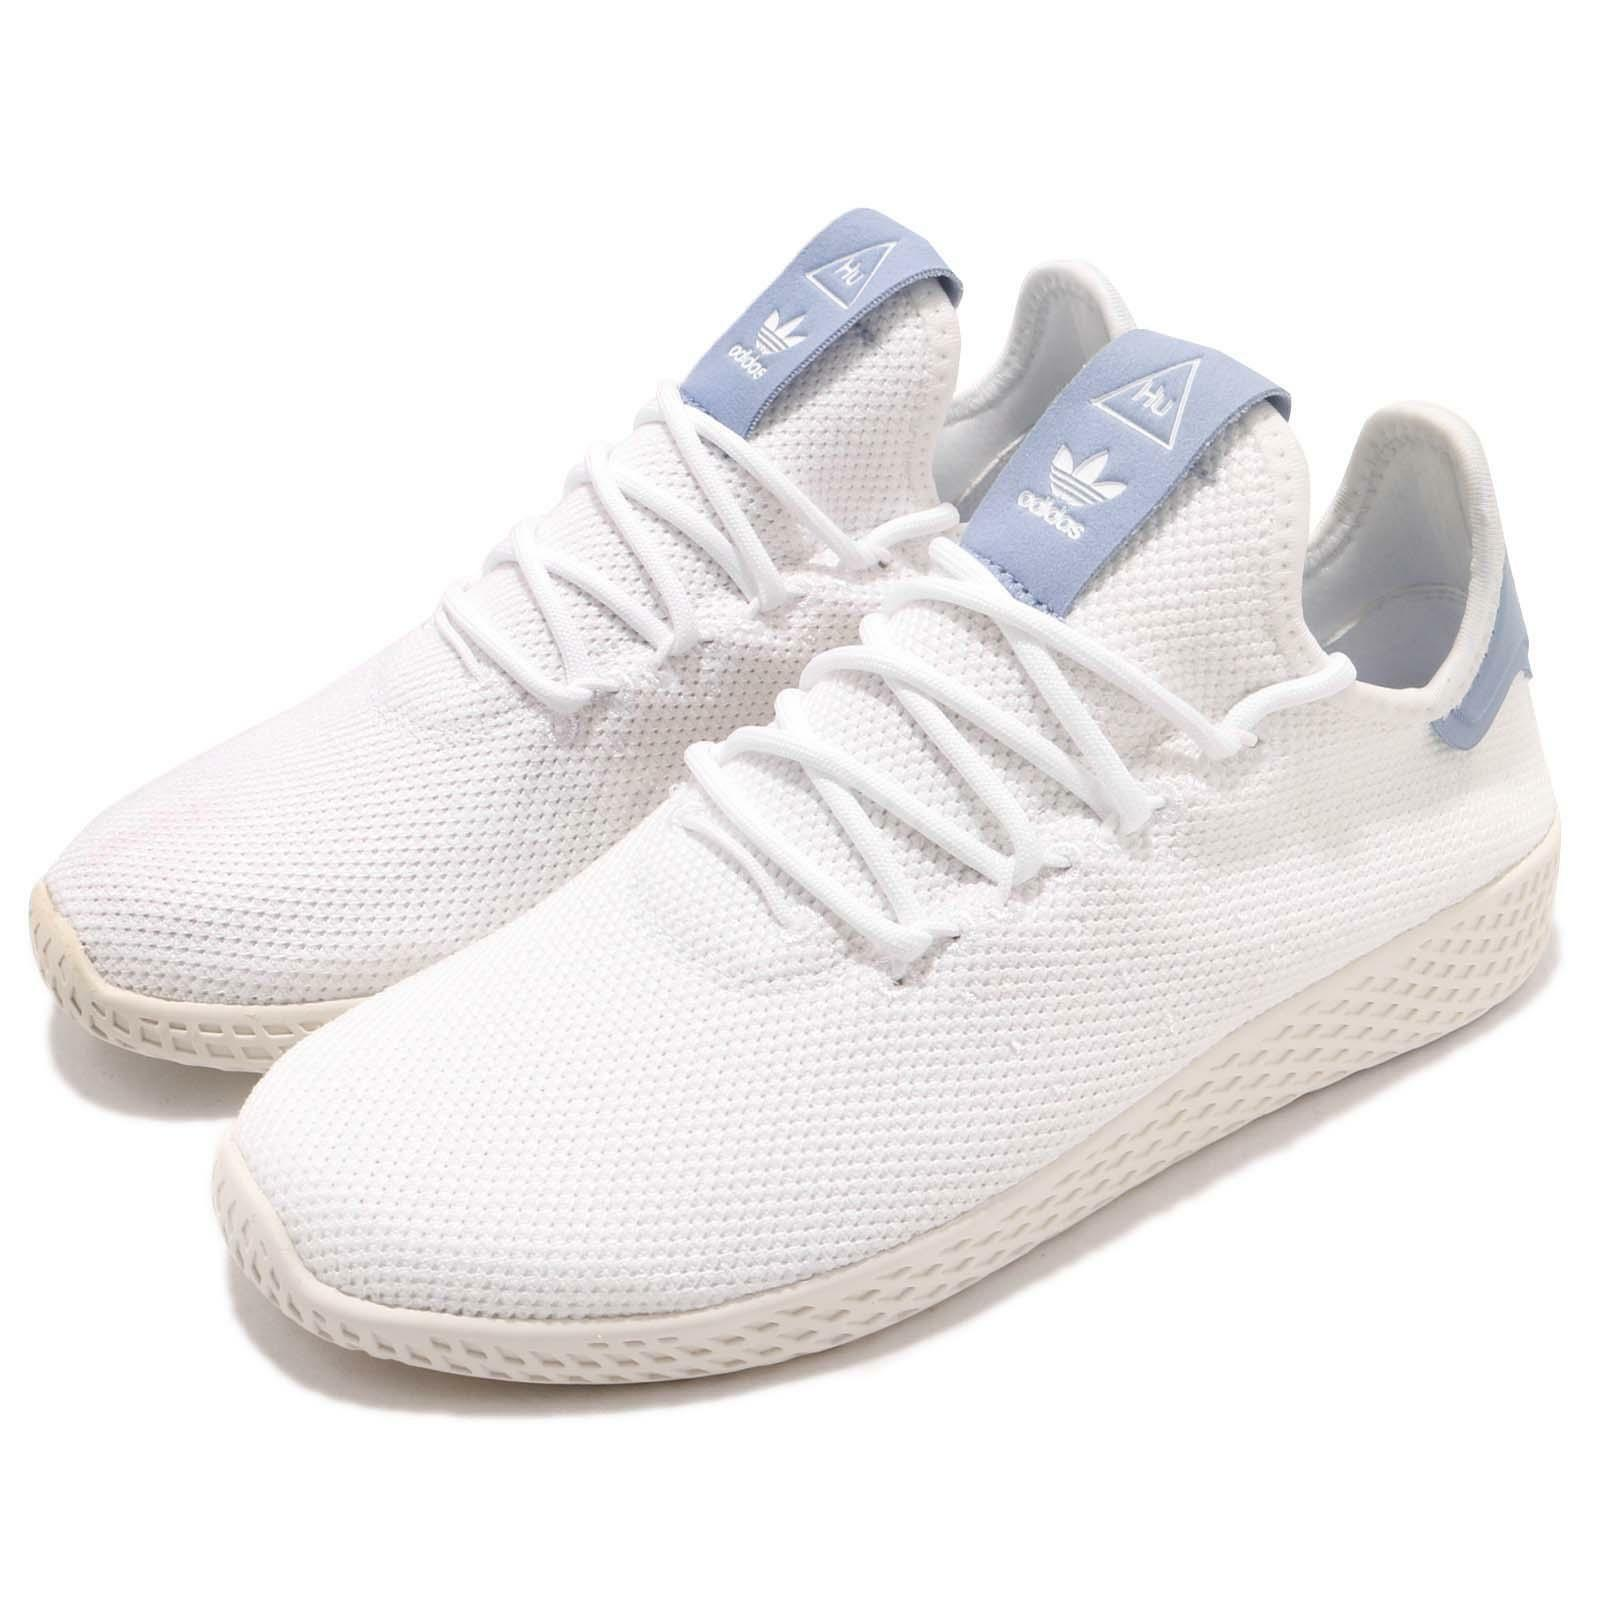 Cq2167 Originals Williams Tennis Pw Blanc Pharrell Bleu Hu Adidas qzwY4PxY